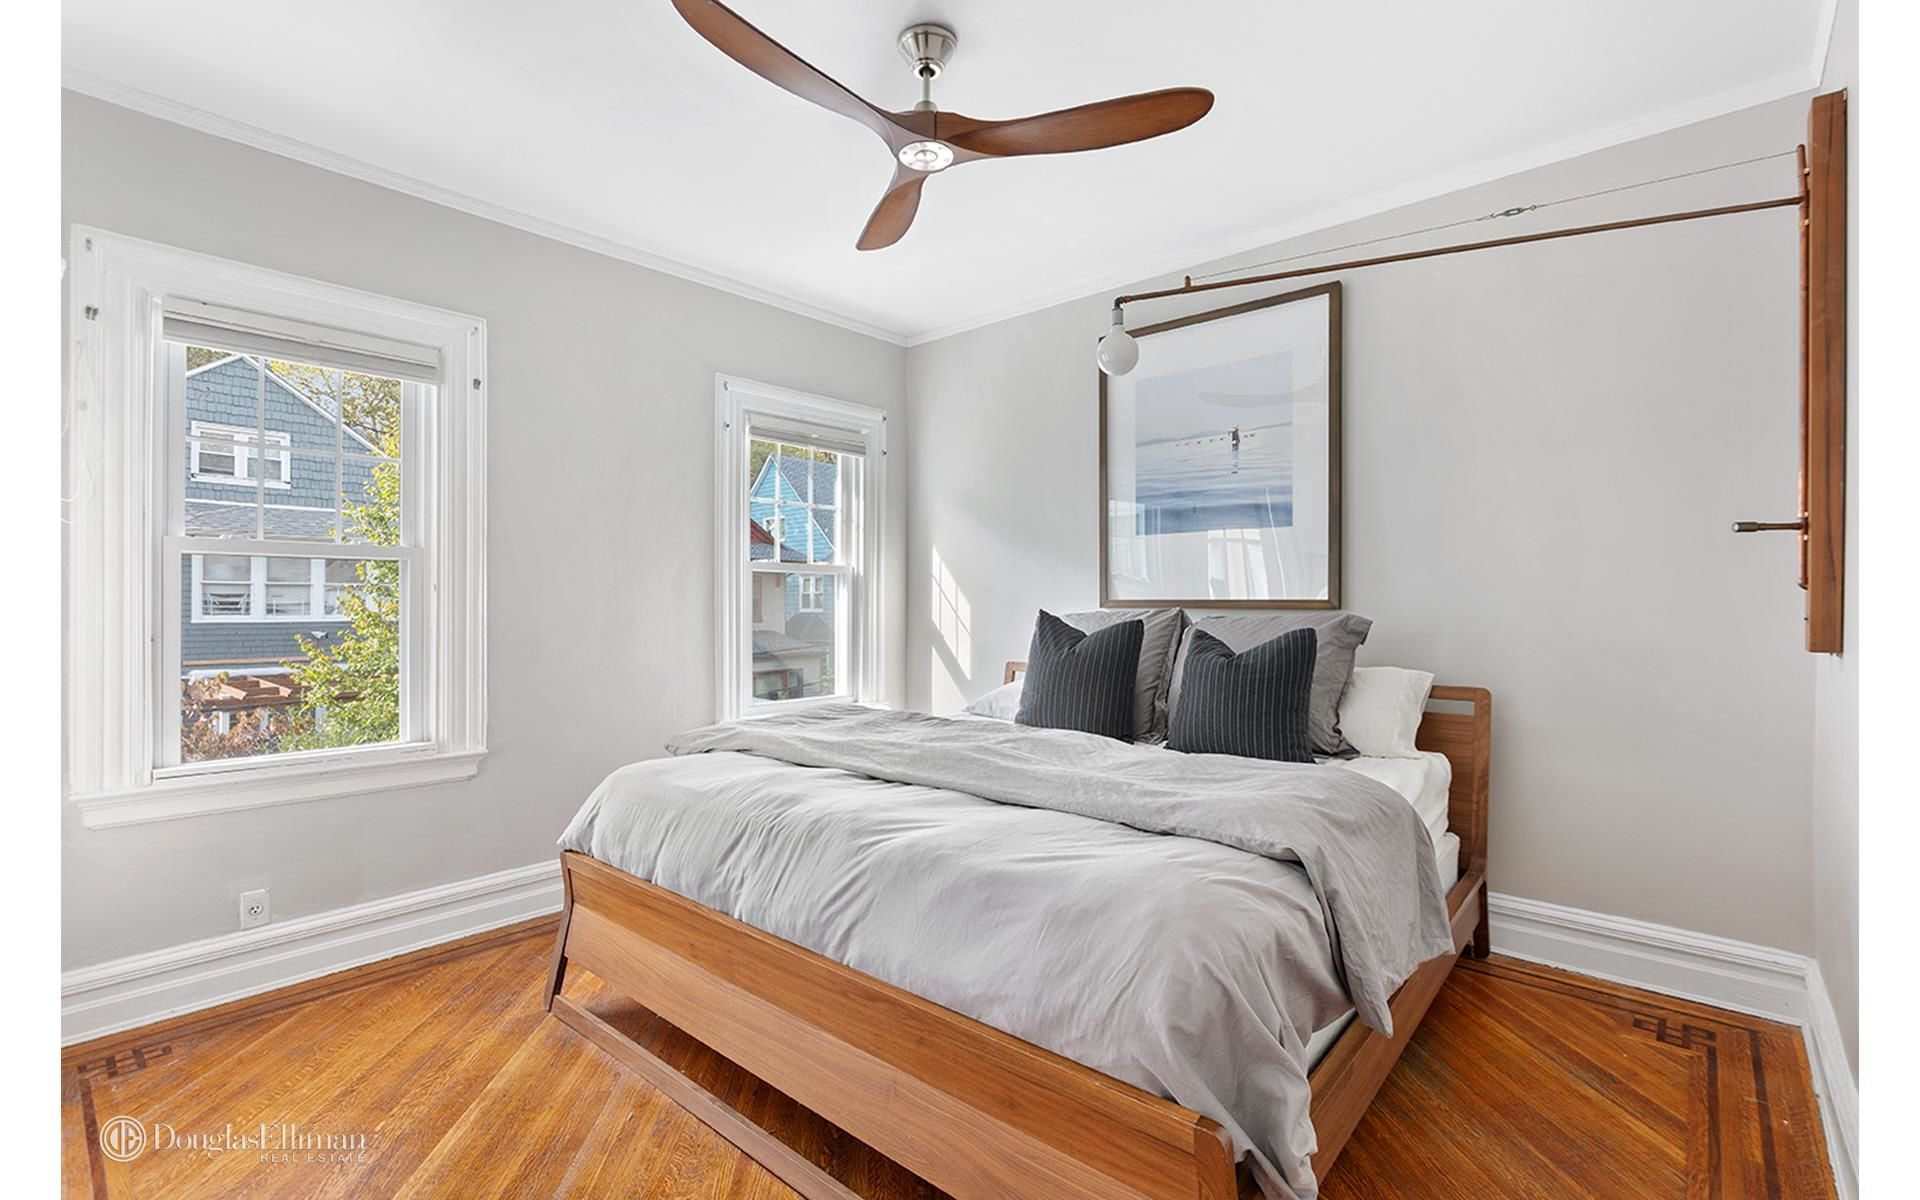 498 Westminster Rd Photo 10 - ELLIMAN-4609557